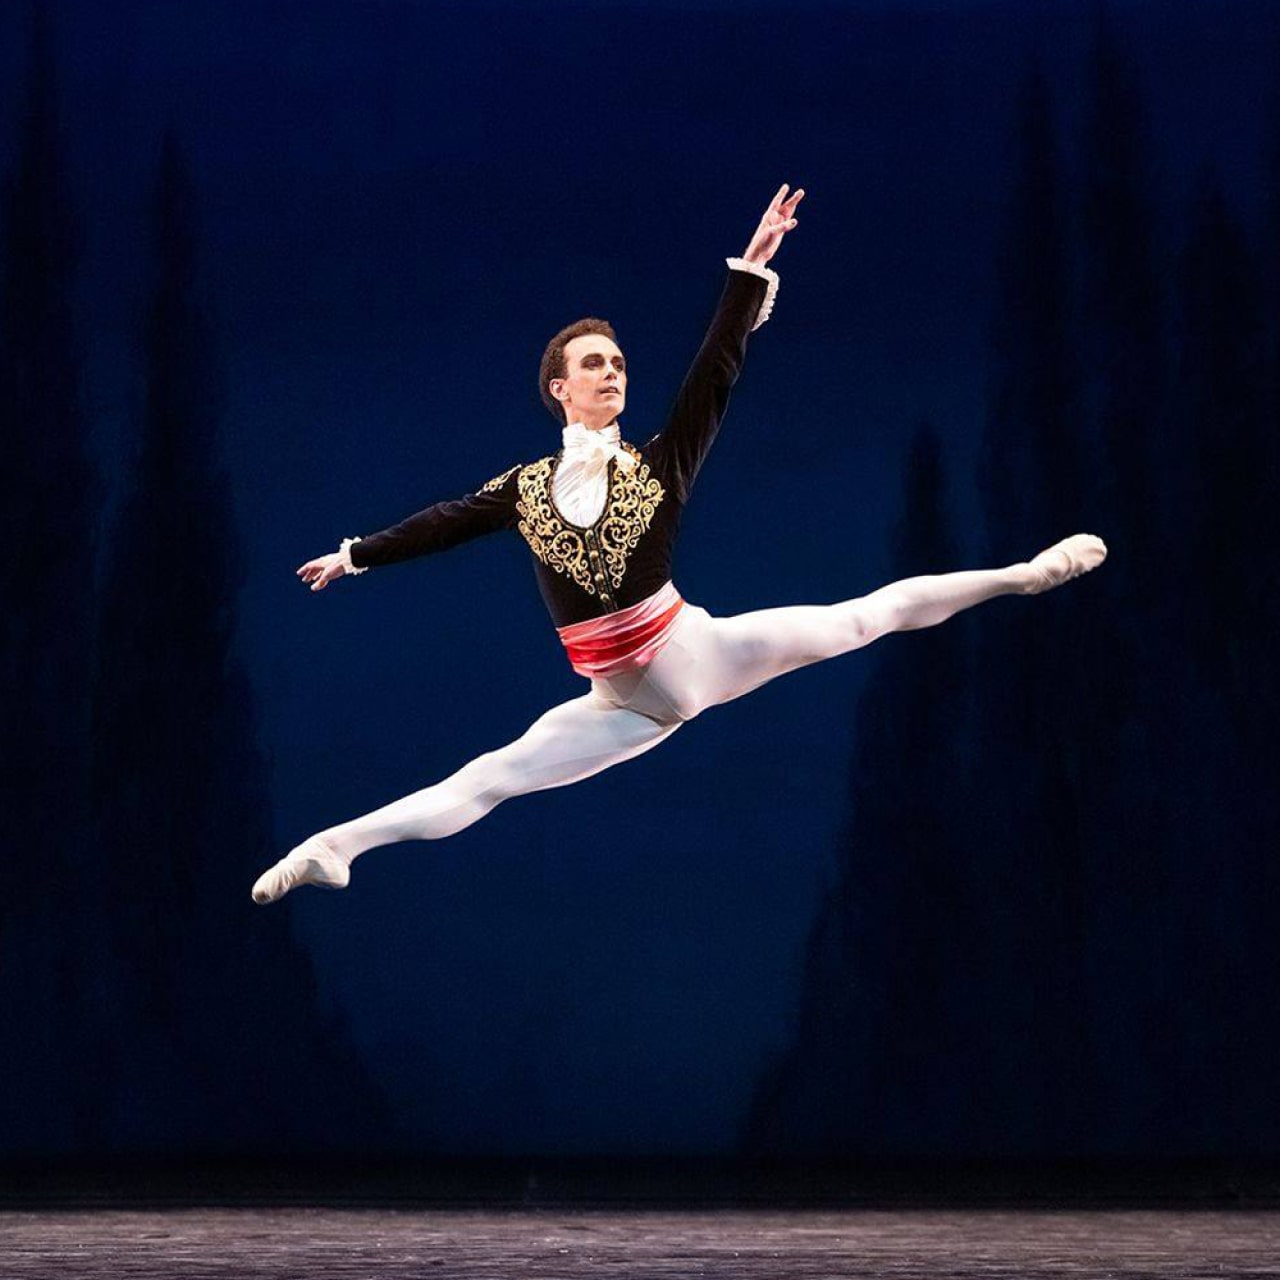 Dancer in white tights and black embroidered jacket leaps against silhouetted fir trees and night sky.